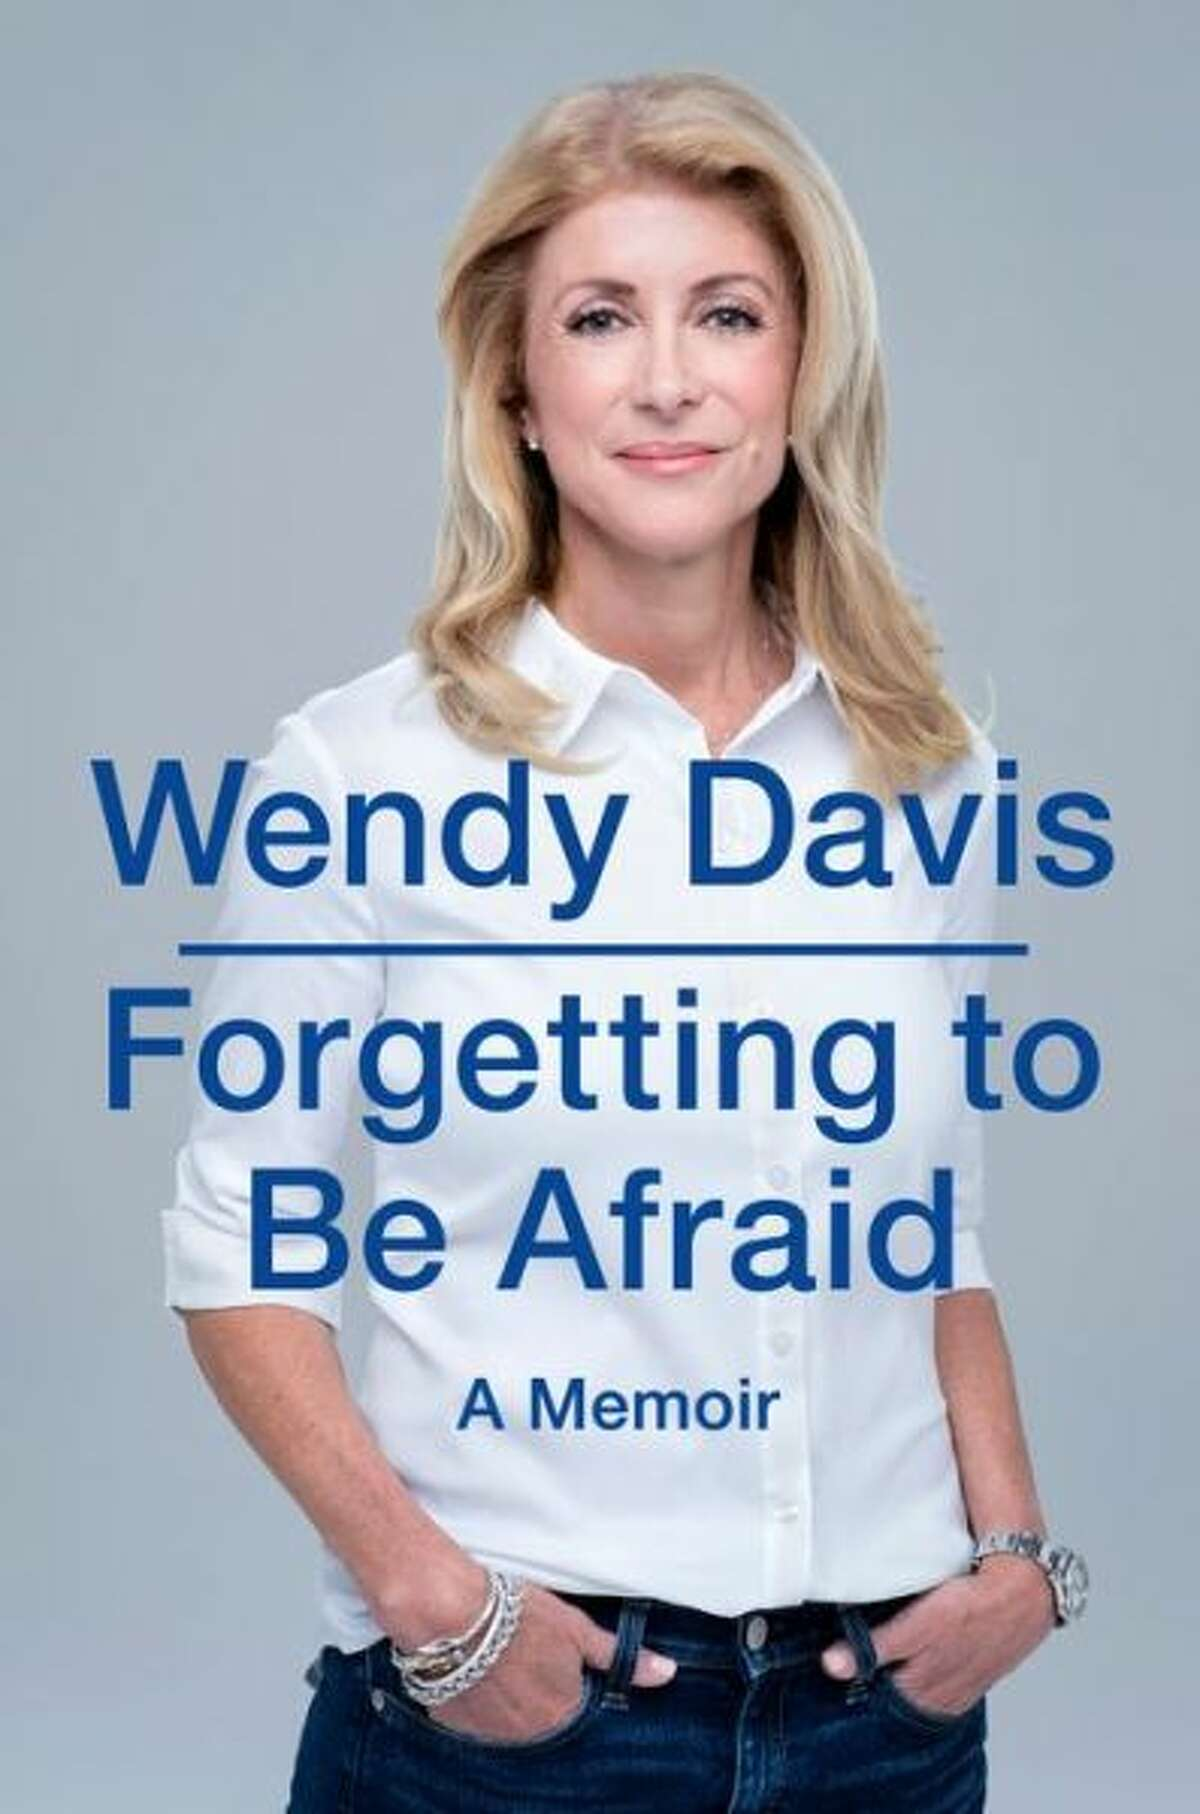 """'Forgetting to Be Afraid' by Wendy Davis The Texas state senator and gubernatorial candidate is taking time at the height of her campaign to go on a book tour with her memoir. """"I've written a book about my life, about the challenges I've faced and how those difficulties helped me as a person and helped me overcome the limits of fear and become a fighter for the people I represent and the issues that affect them,"""" Davis says in an online video promoting the book. (Tuesday from Blue Rider Press) Davis will sign her book at 1 p.m. Saturday at Brazos Bookstore, 2421 Bissonnet. Purchase a $27.95 book ticket at 713-523-0701 or brazosbookstore.com."""